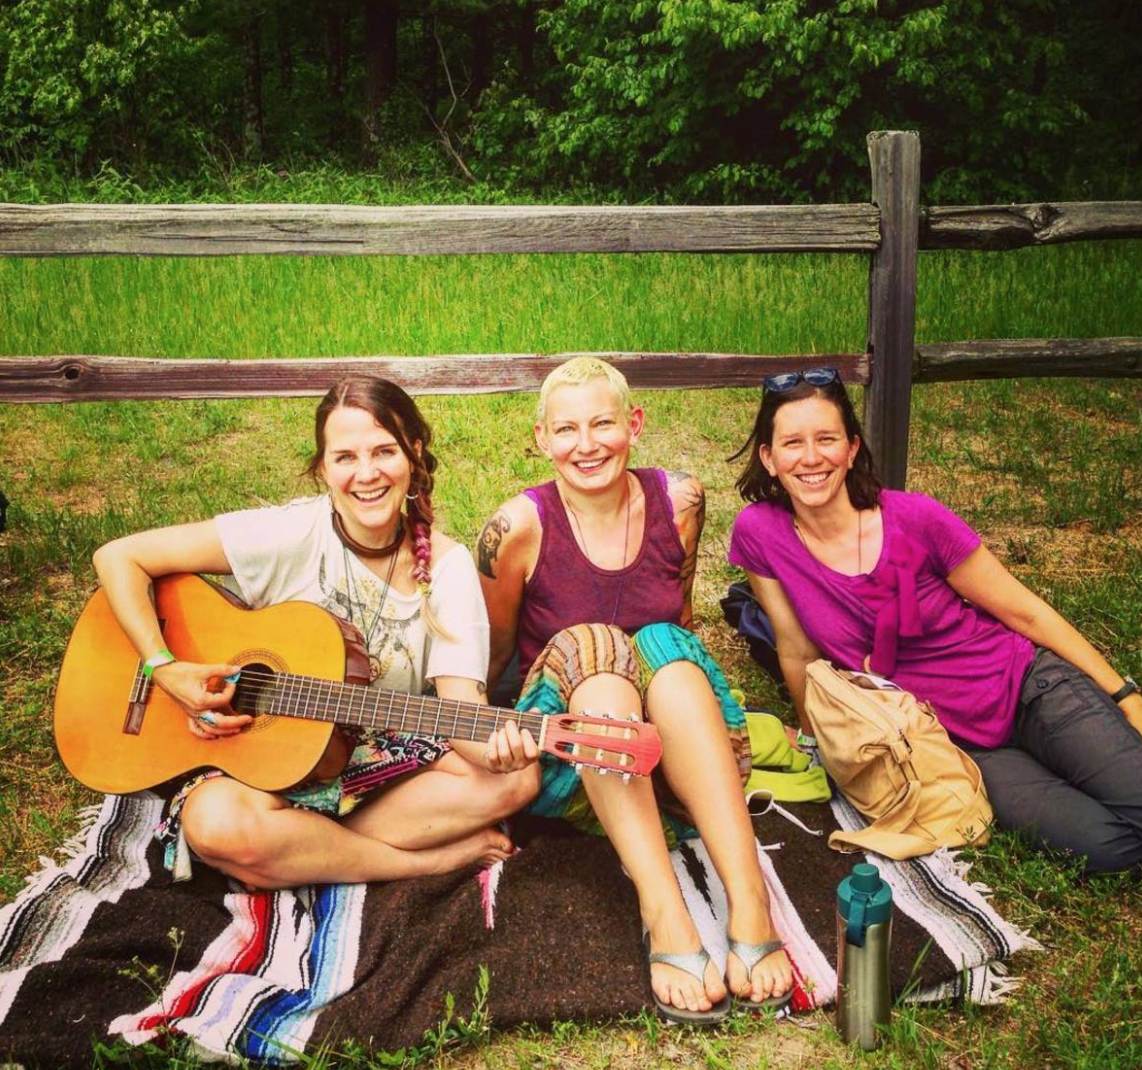 Mary Bue Music - Midwest Women's Herbal Conference